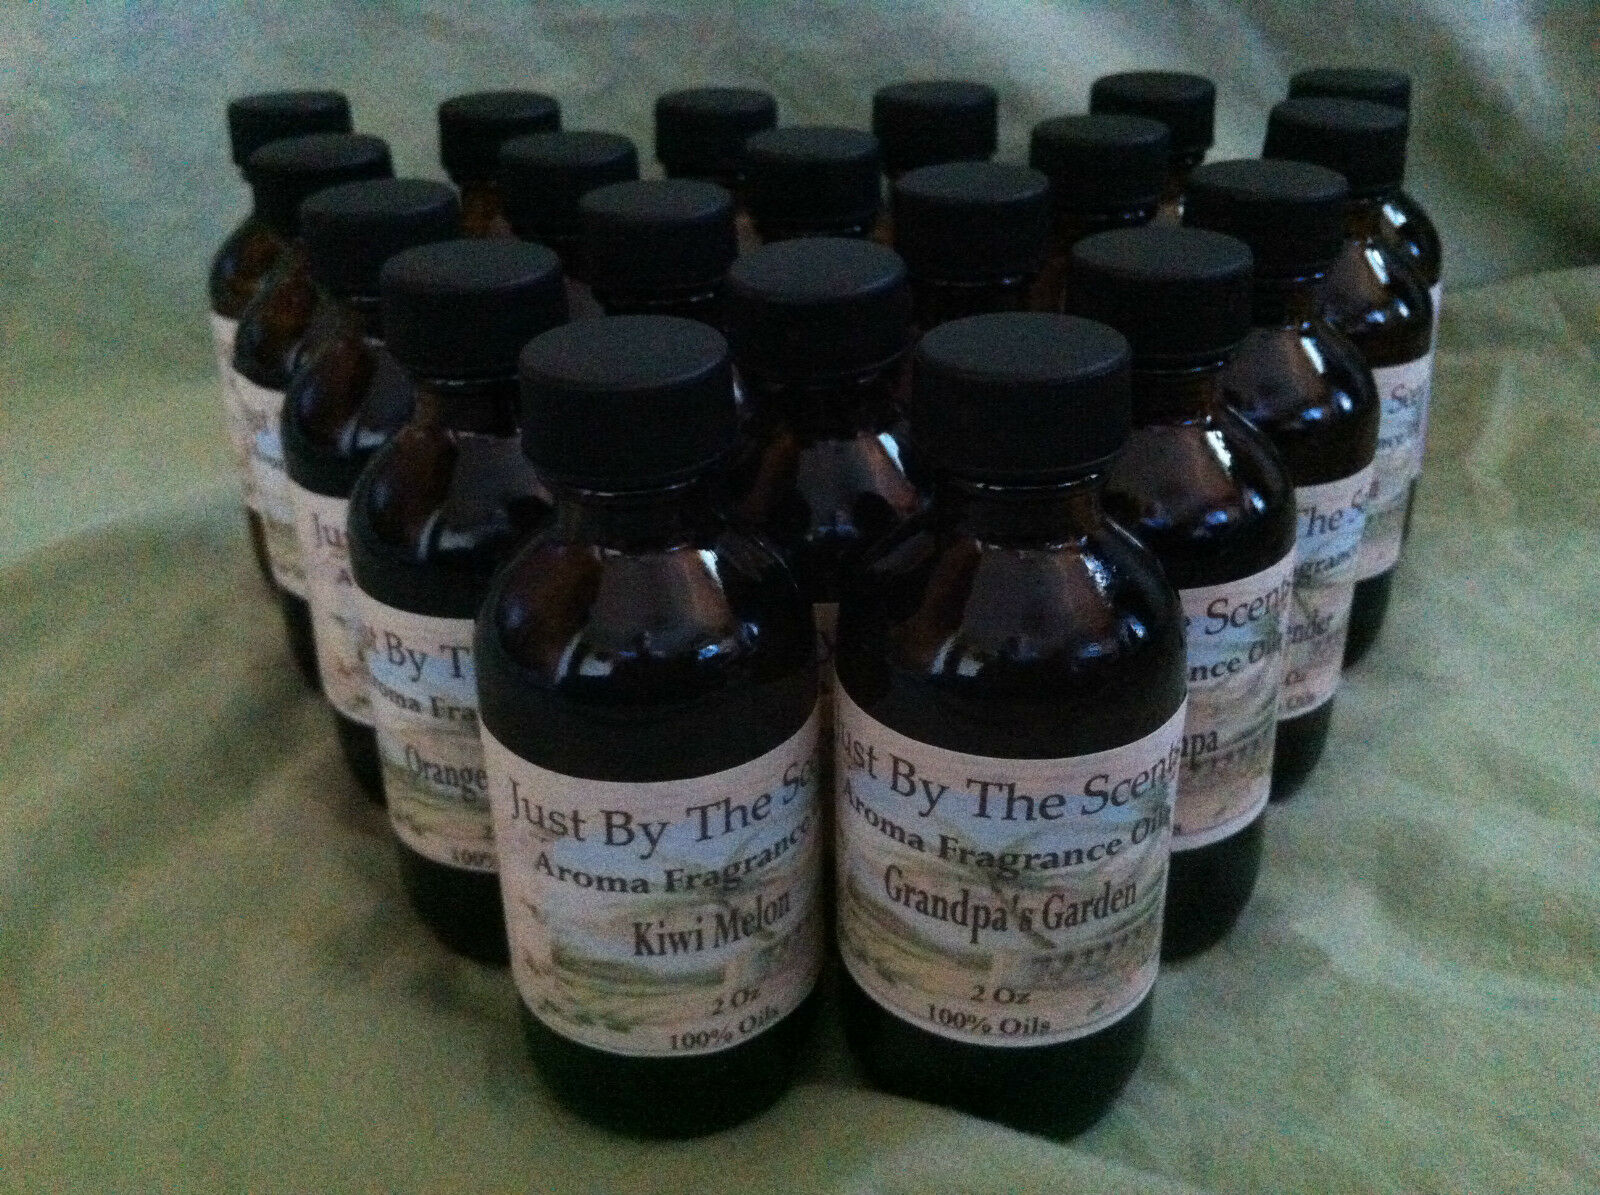 Home Fragrance Oils For Oil Warmers -Large 2oz - Buy 4 Get 1 Free, Add 5 to Cart